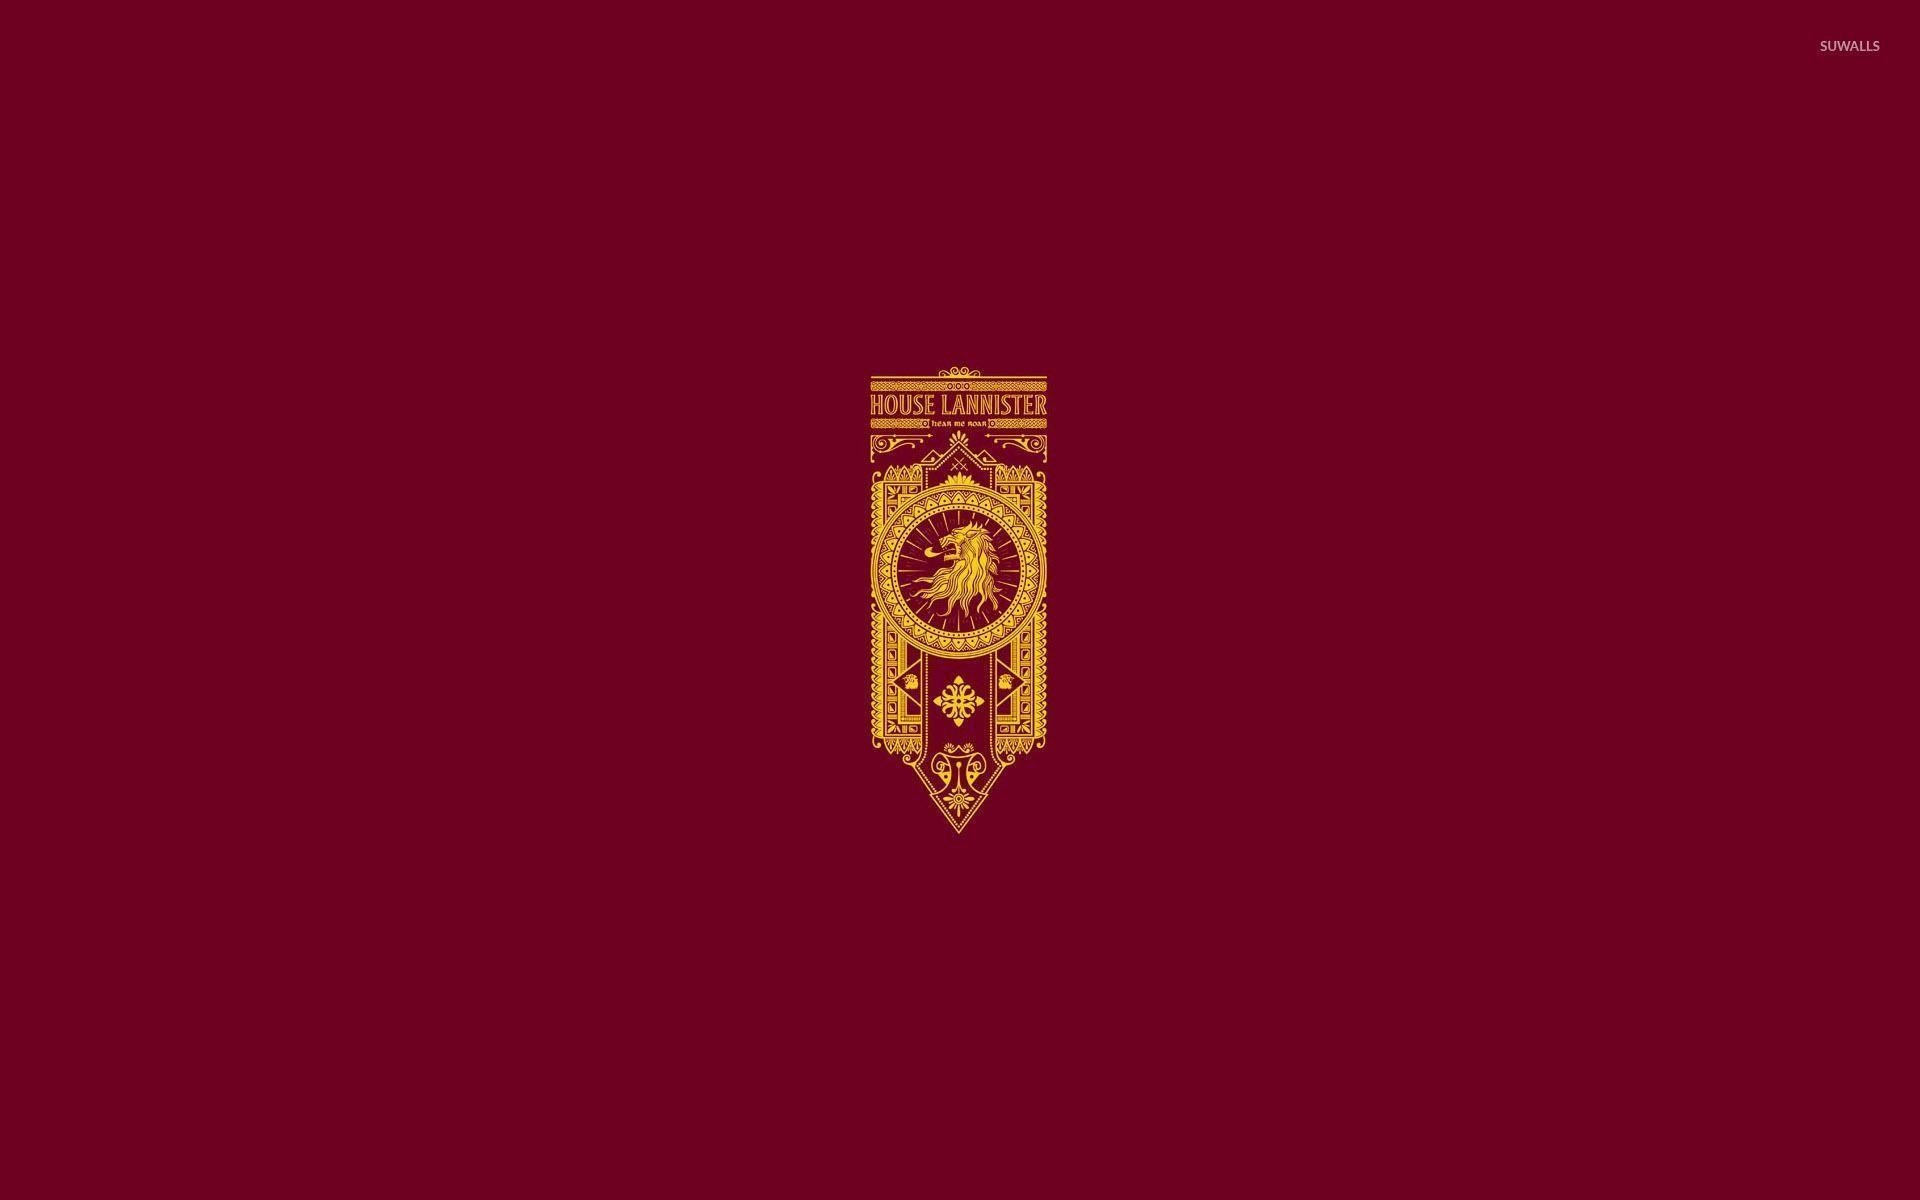 House Lannister wallpaper – Minimalistic wallpapers – #28601